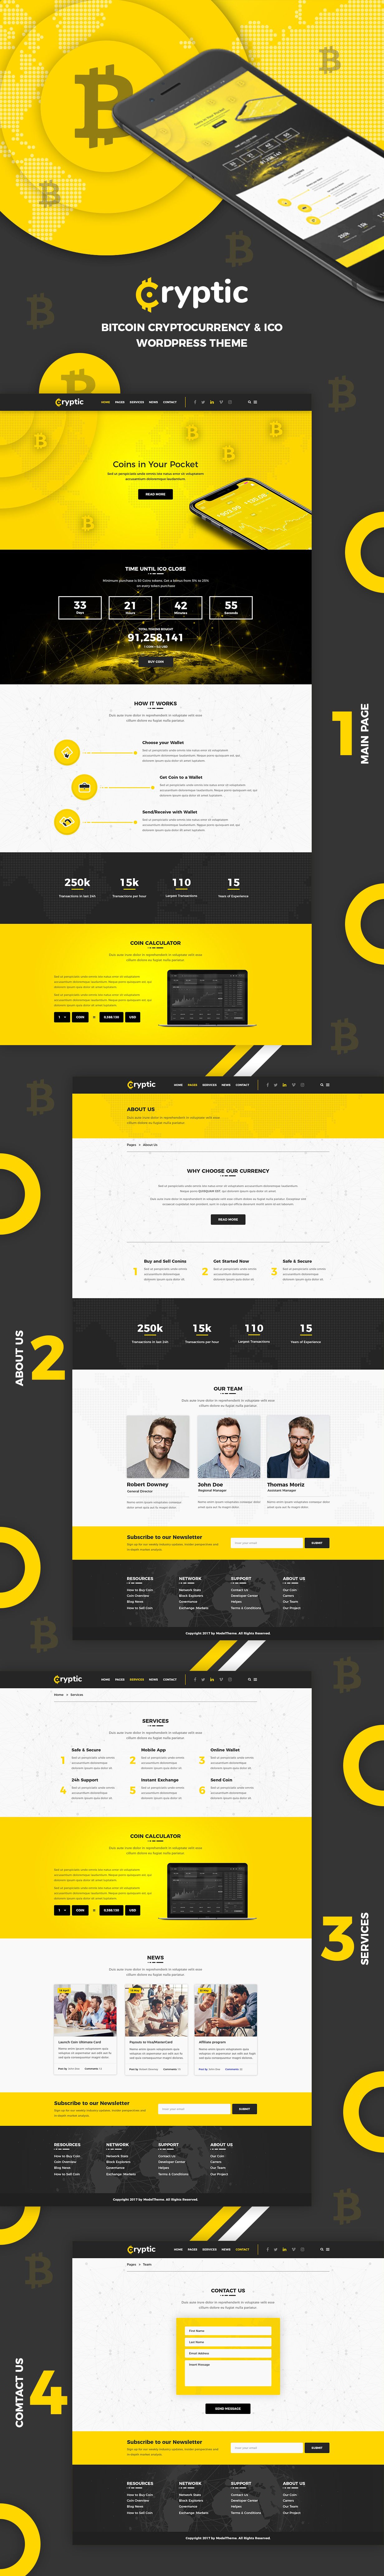 descriere part1 edit5 - Cryptic - Cryptocurrency WordPress Theme